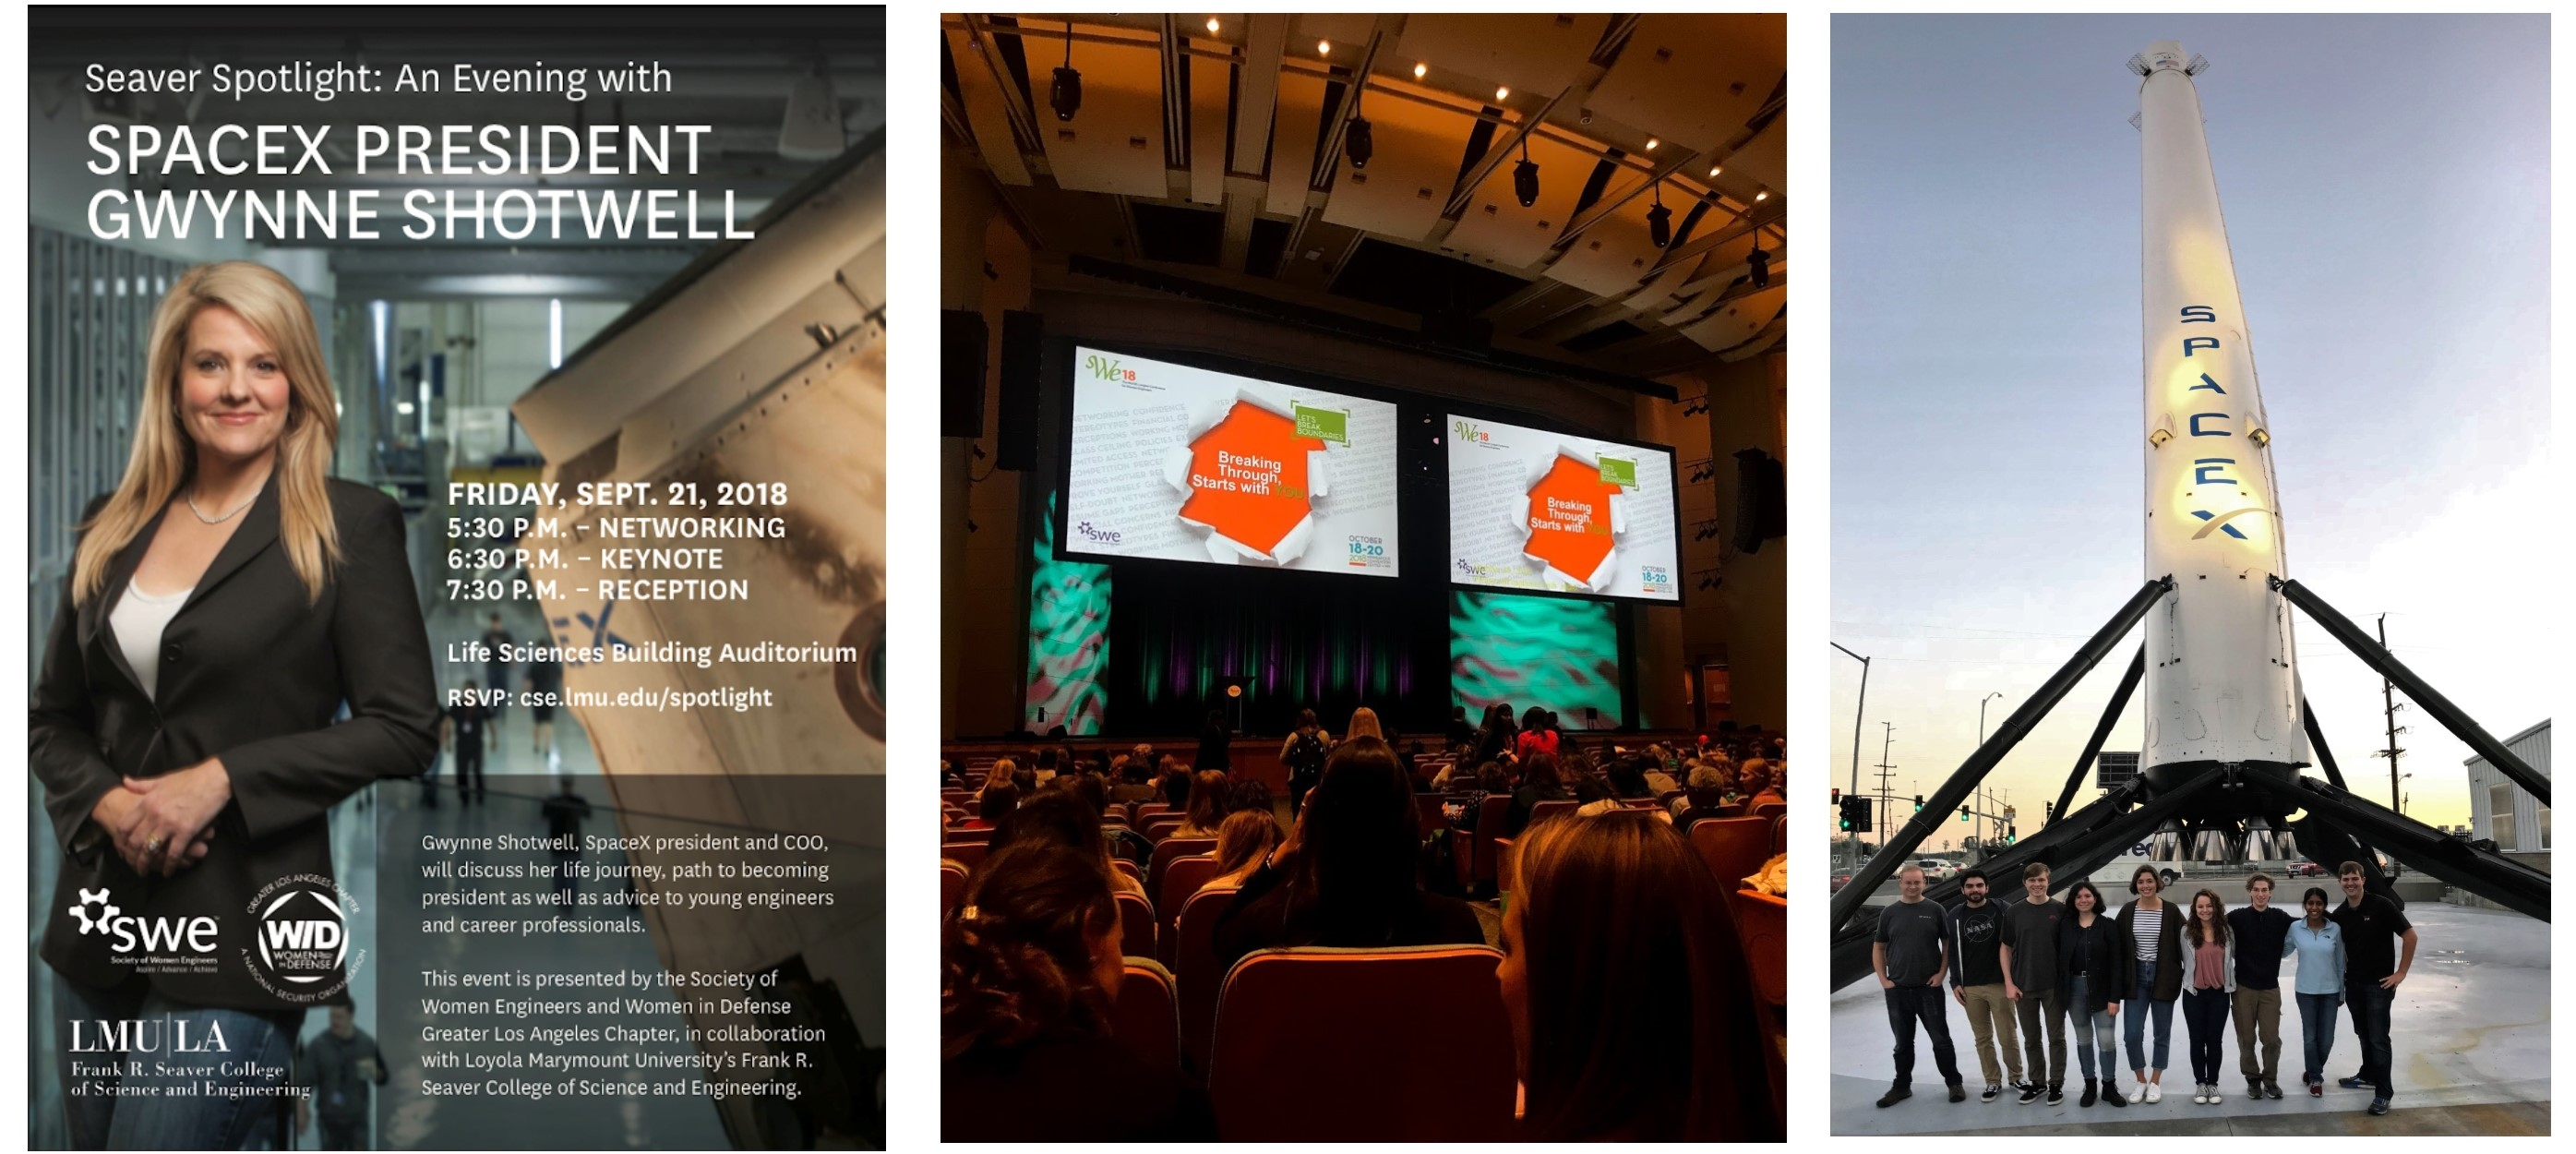 The left photo is a flyer advertising a talk hosted at the Loyola Marymount University given by the President of SpaceX Gynne Shotwell with details for the event. The middle photo is a picture of a stage in an auditorium at the SWE conference. The right photo is 7 current Mudd students posing with 2 Mudd alumni who work at SpaceX in front of a rocket outside of the SpaceX facilities in Hawthorne.